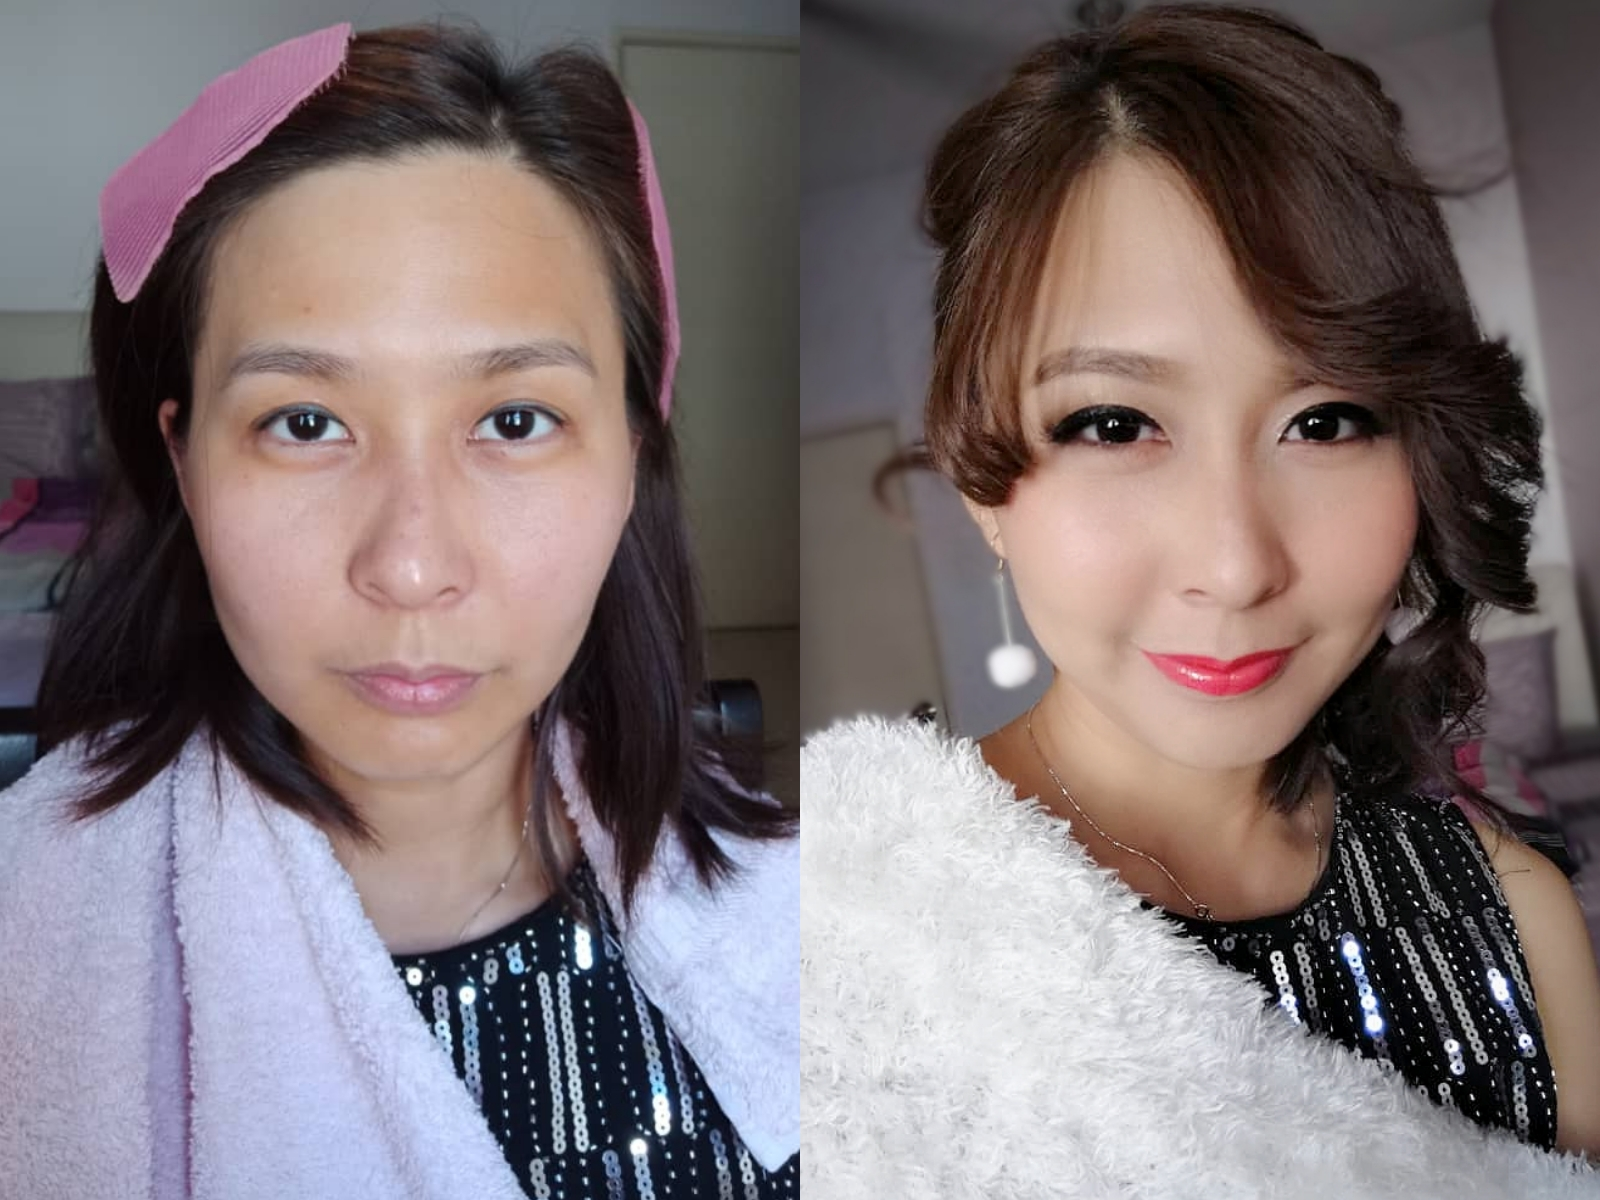 Makeup Service in KL